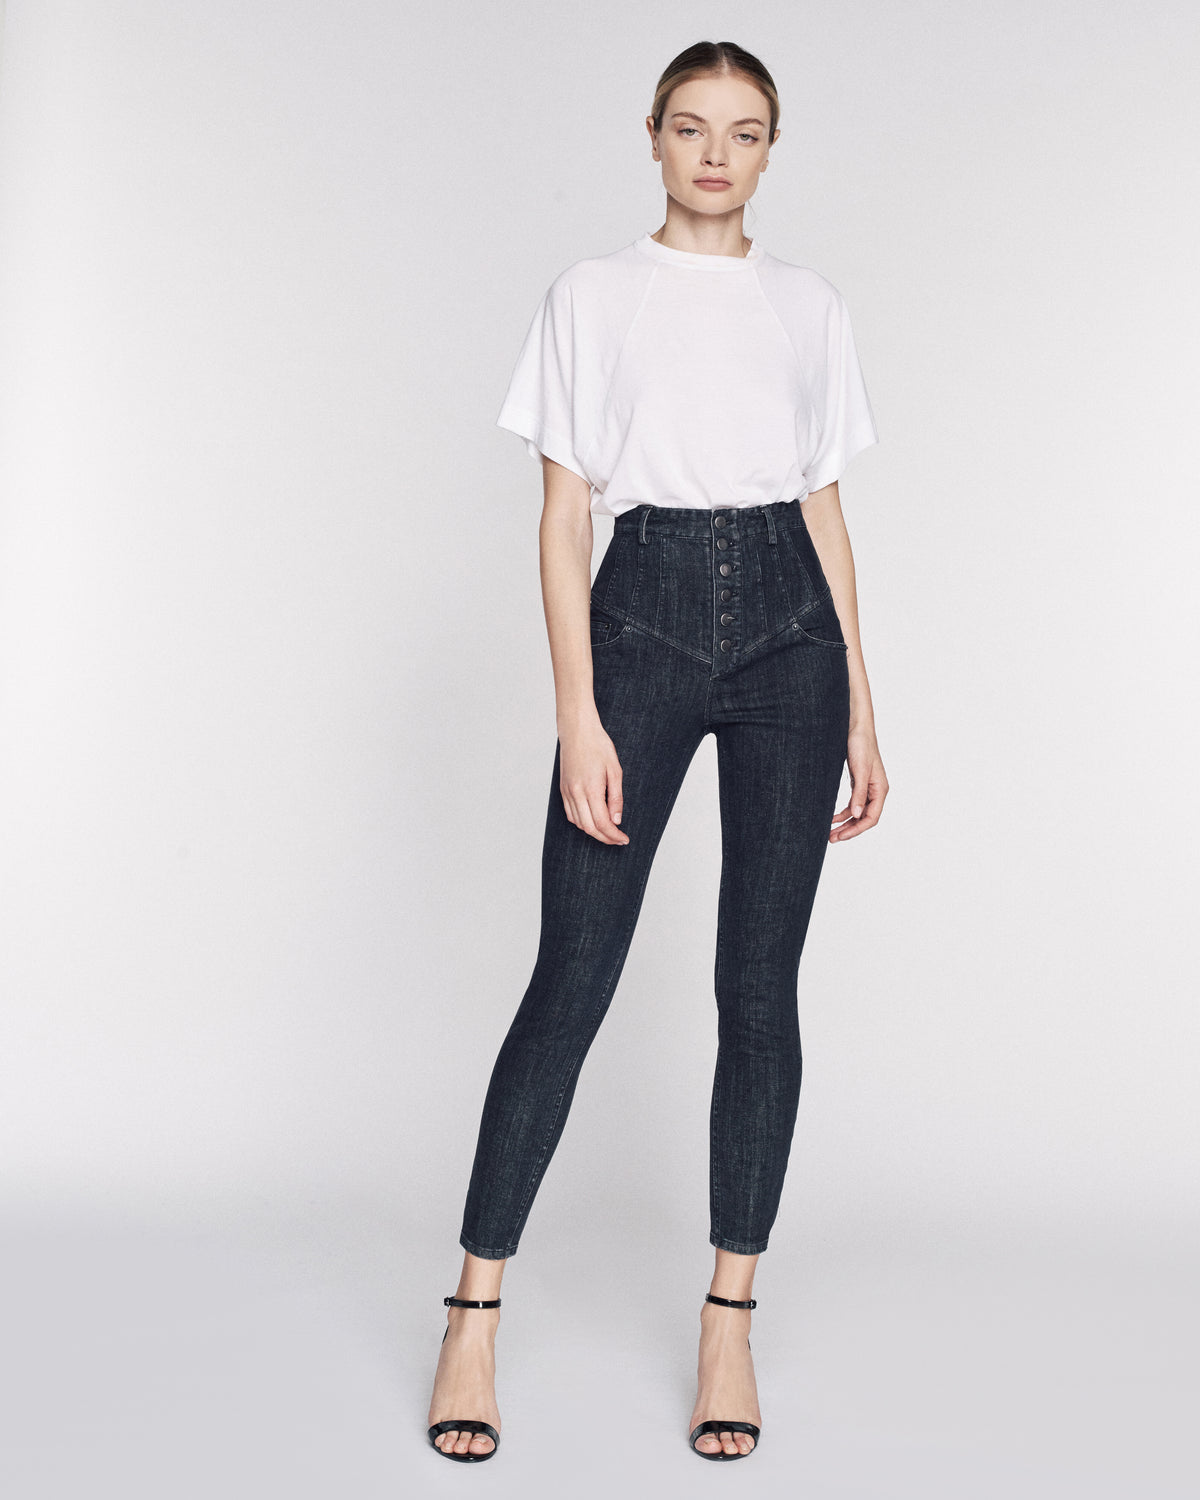 Hartly Denim Pant in Black Rinse Wash